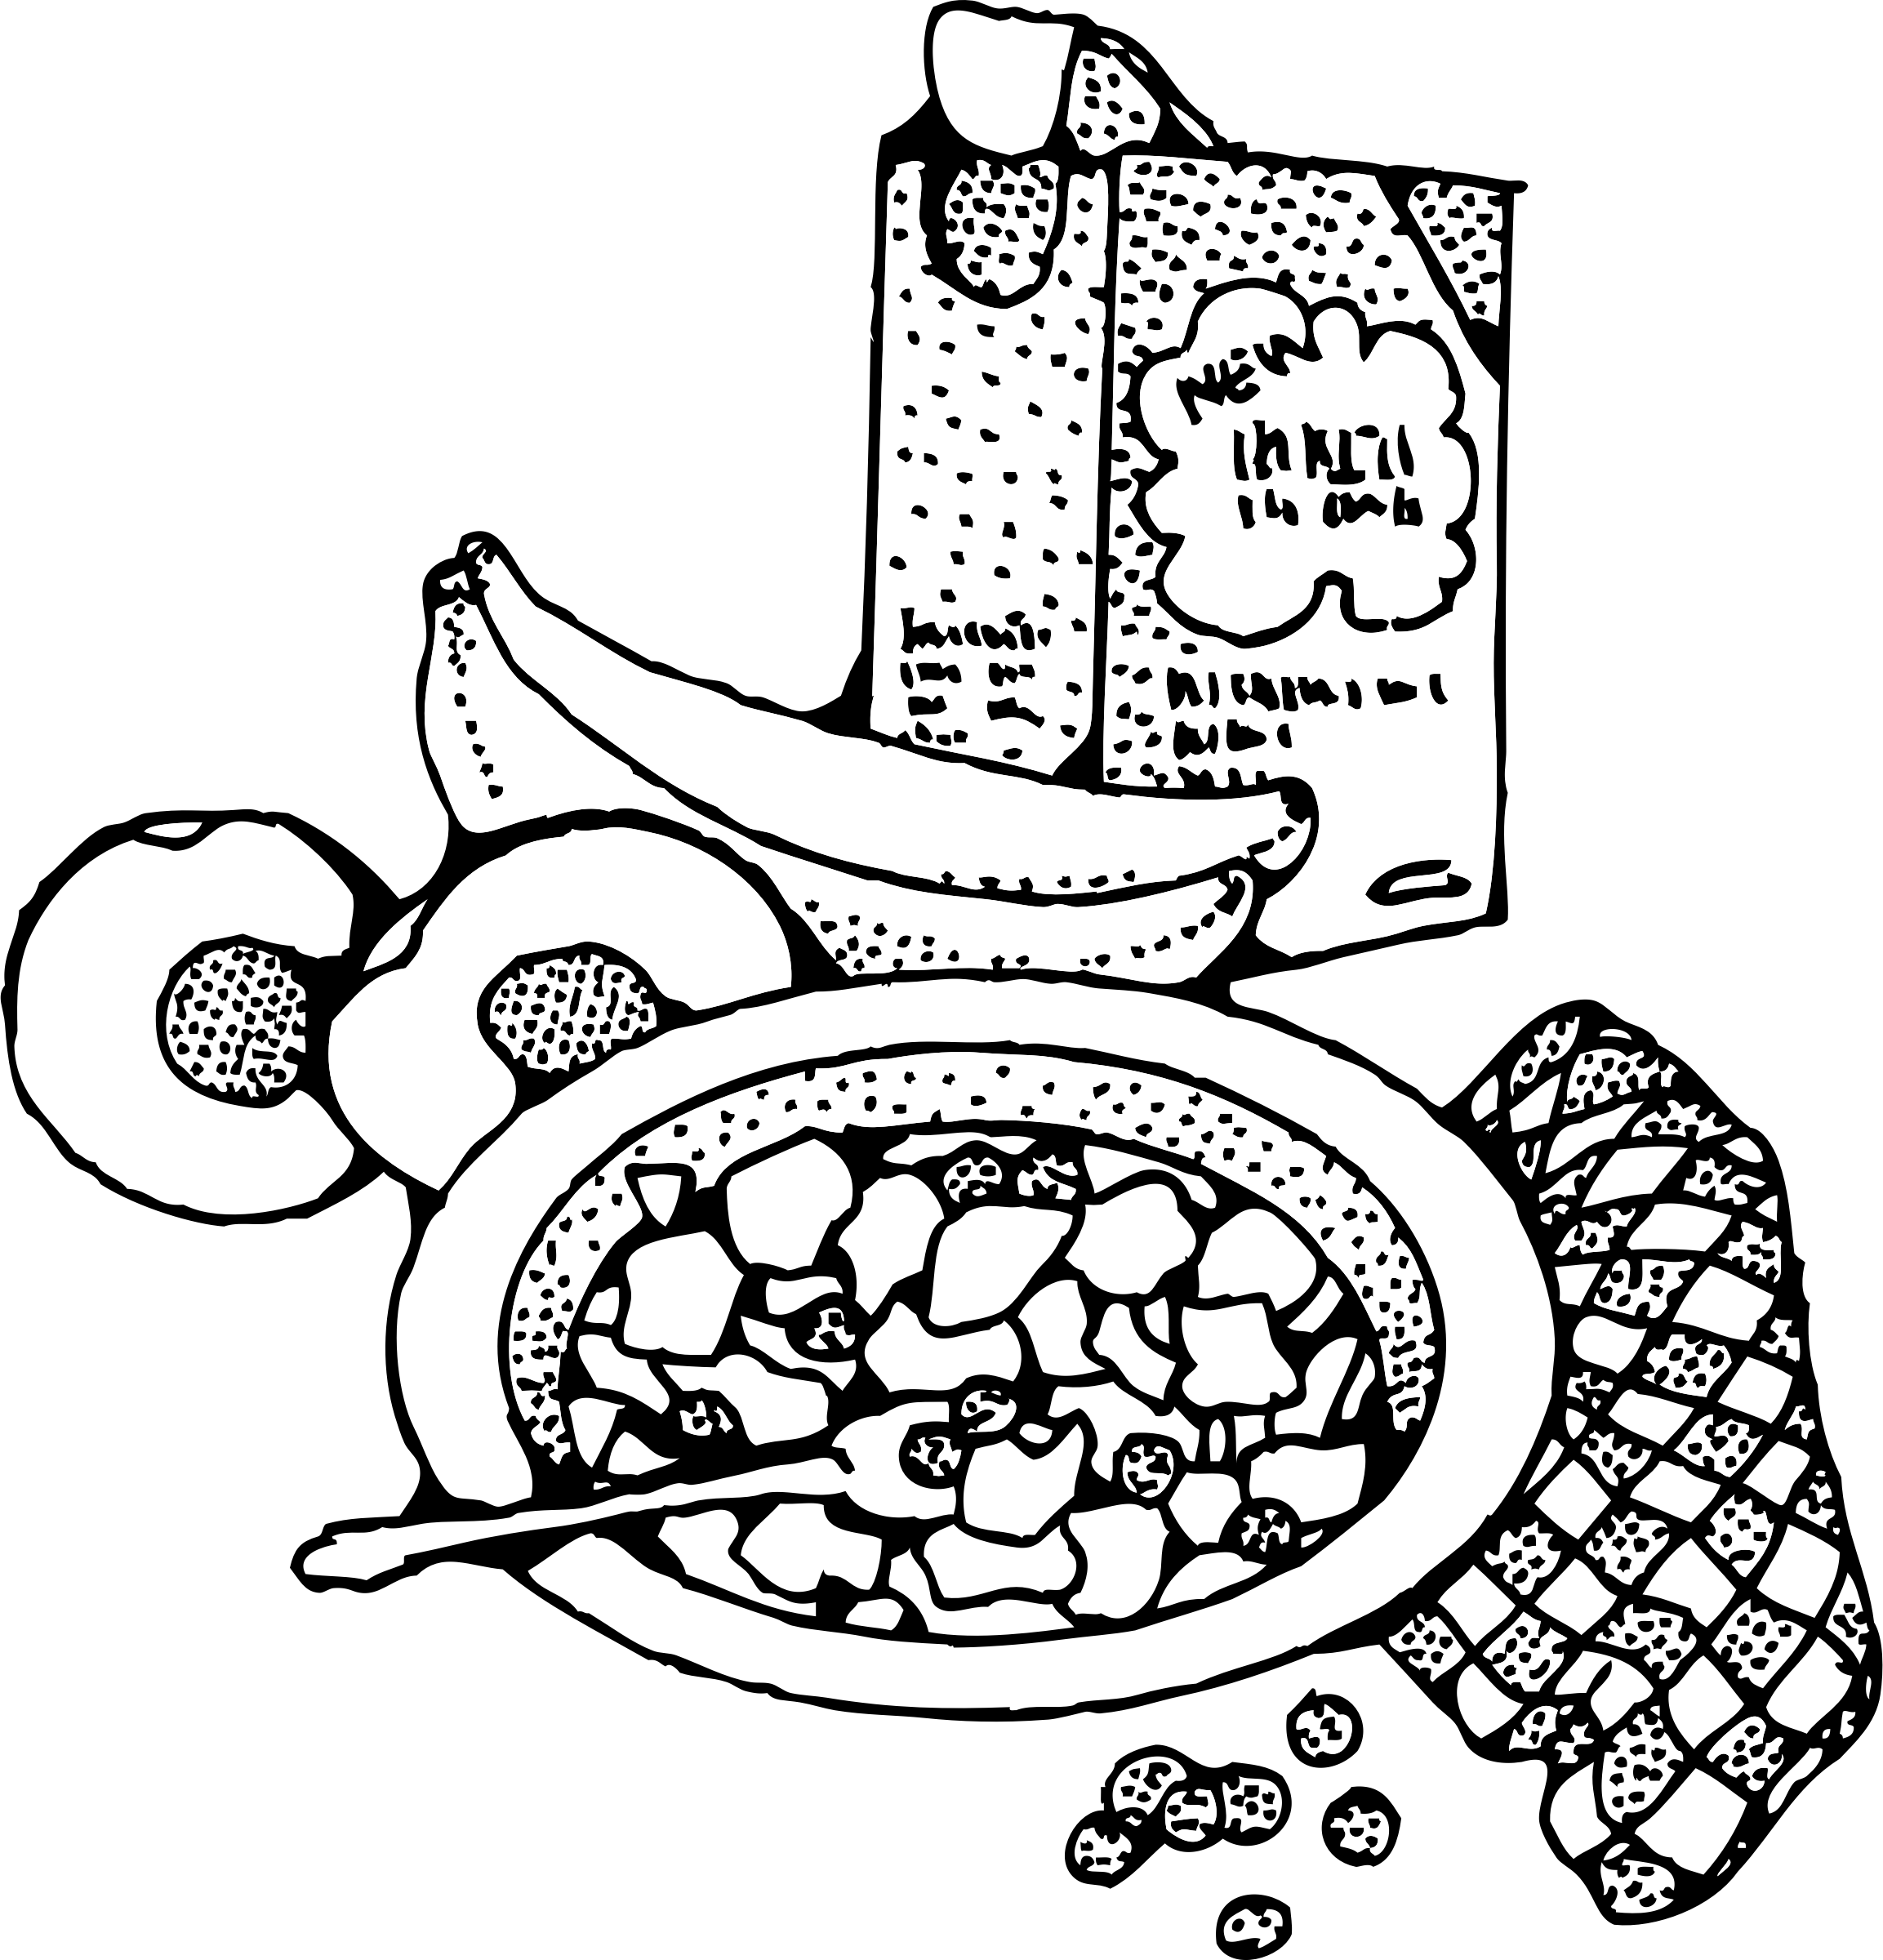 jpg transparent download Cereal clipart breakfast time. With big image png.